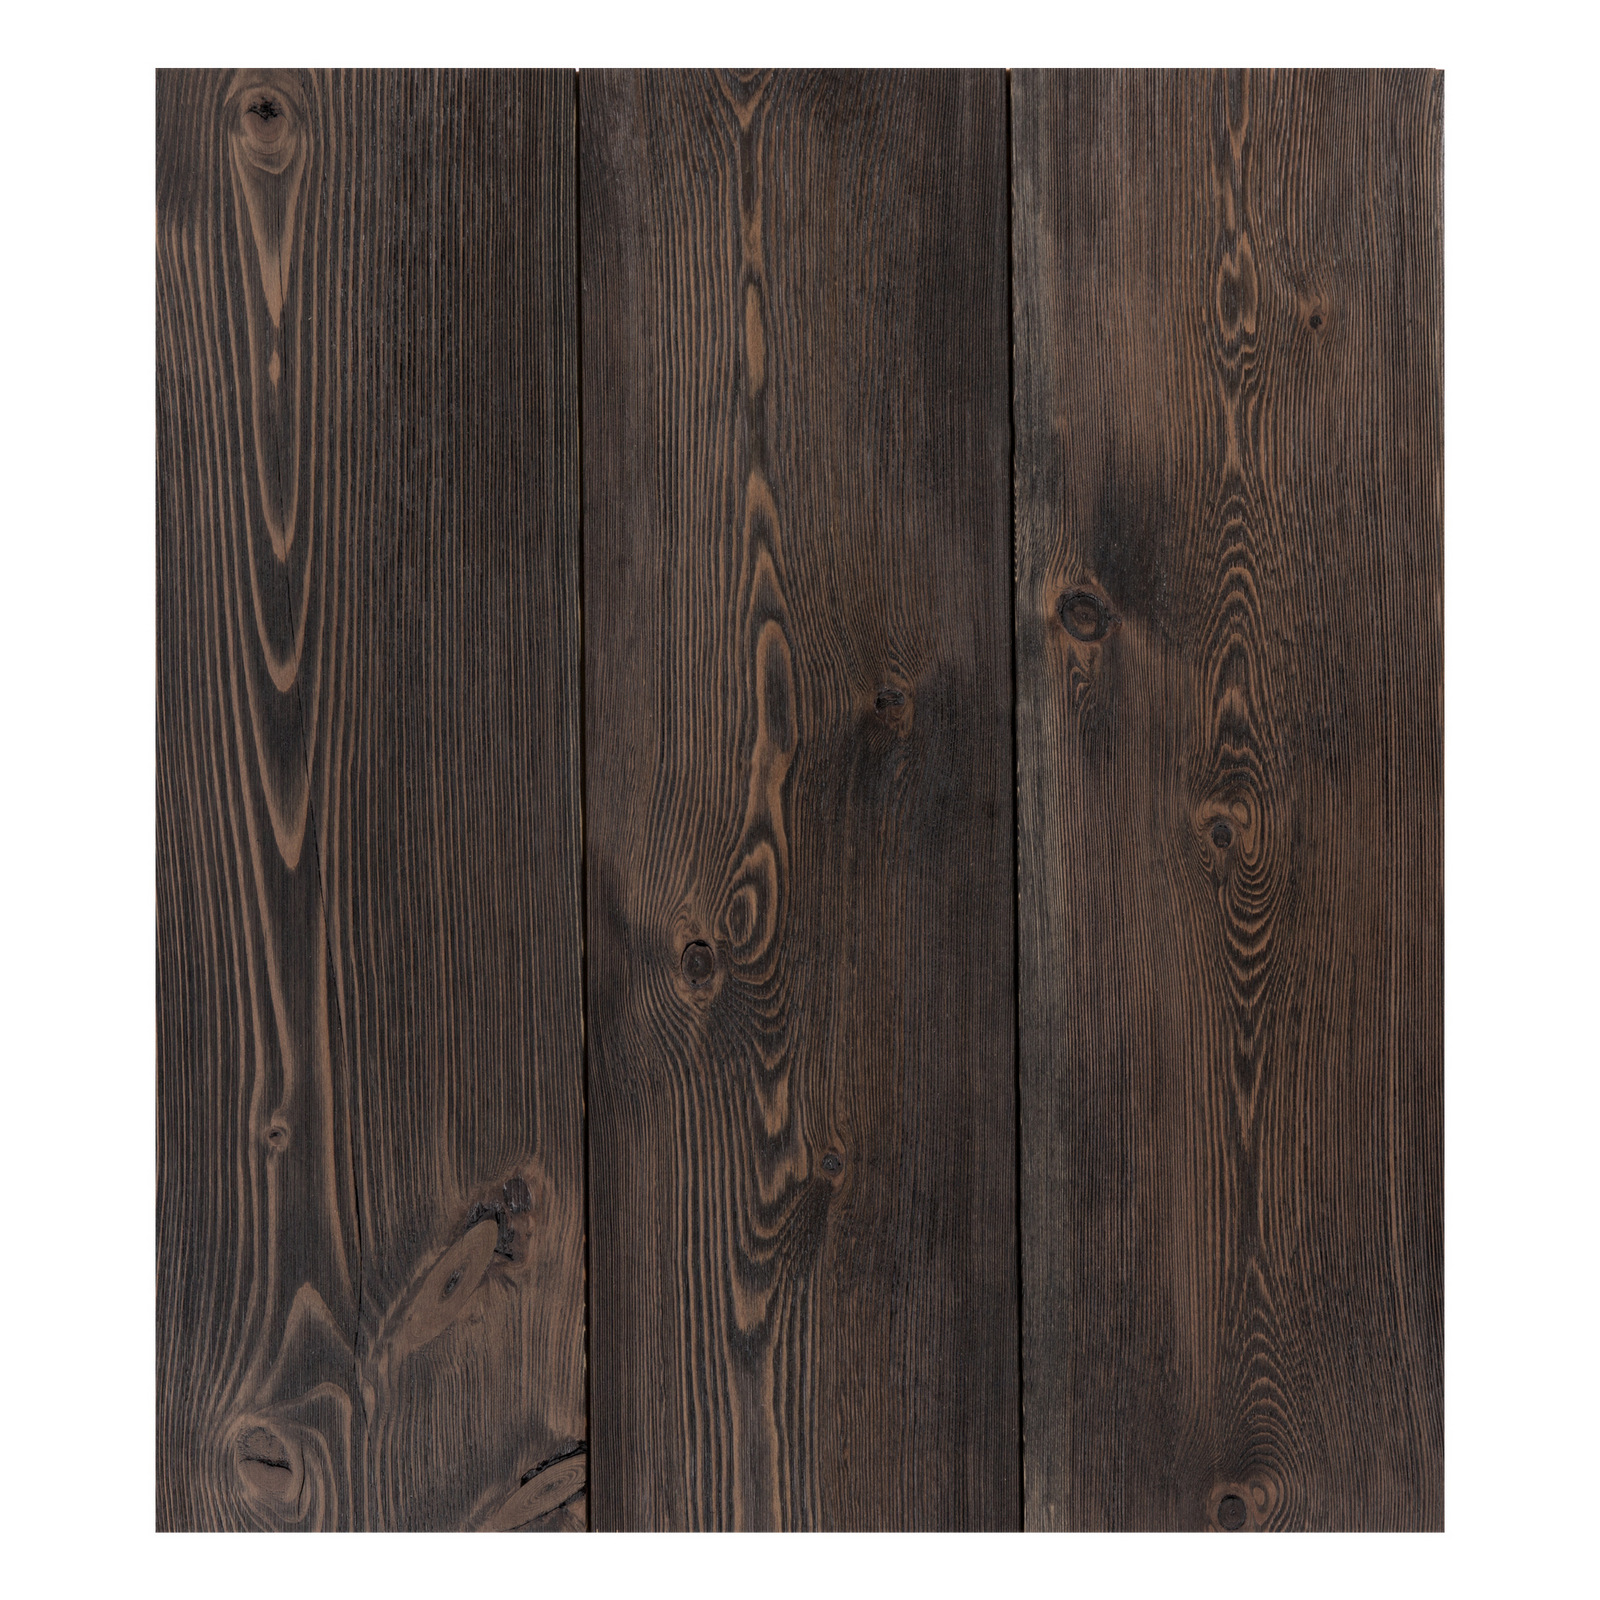 Canyon antique sustainable lumber company for Reclaimed douglas fir flooring